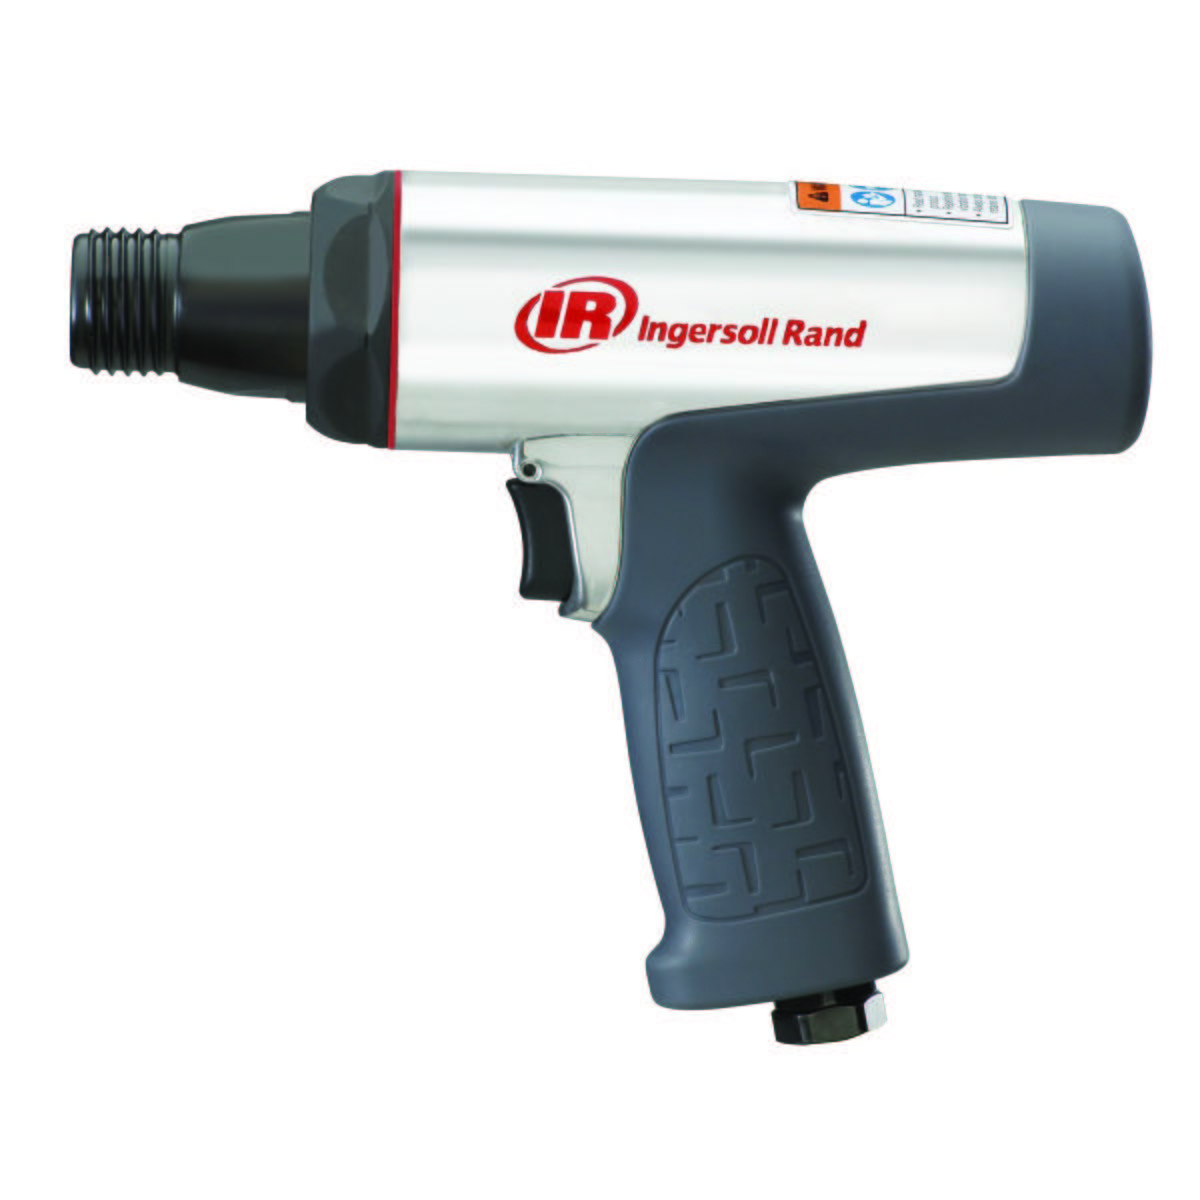 Low Vibration Short Barrel Air Hammer - 2.63-In Stroke with 3,500 Blows Per Minute